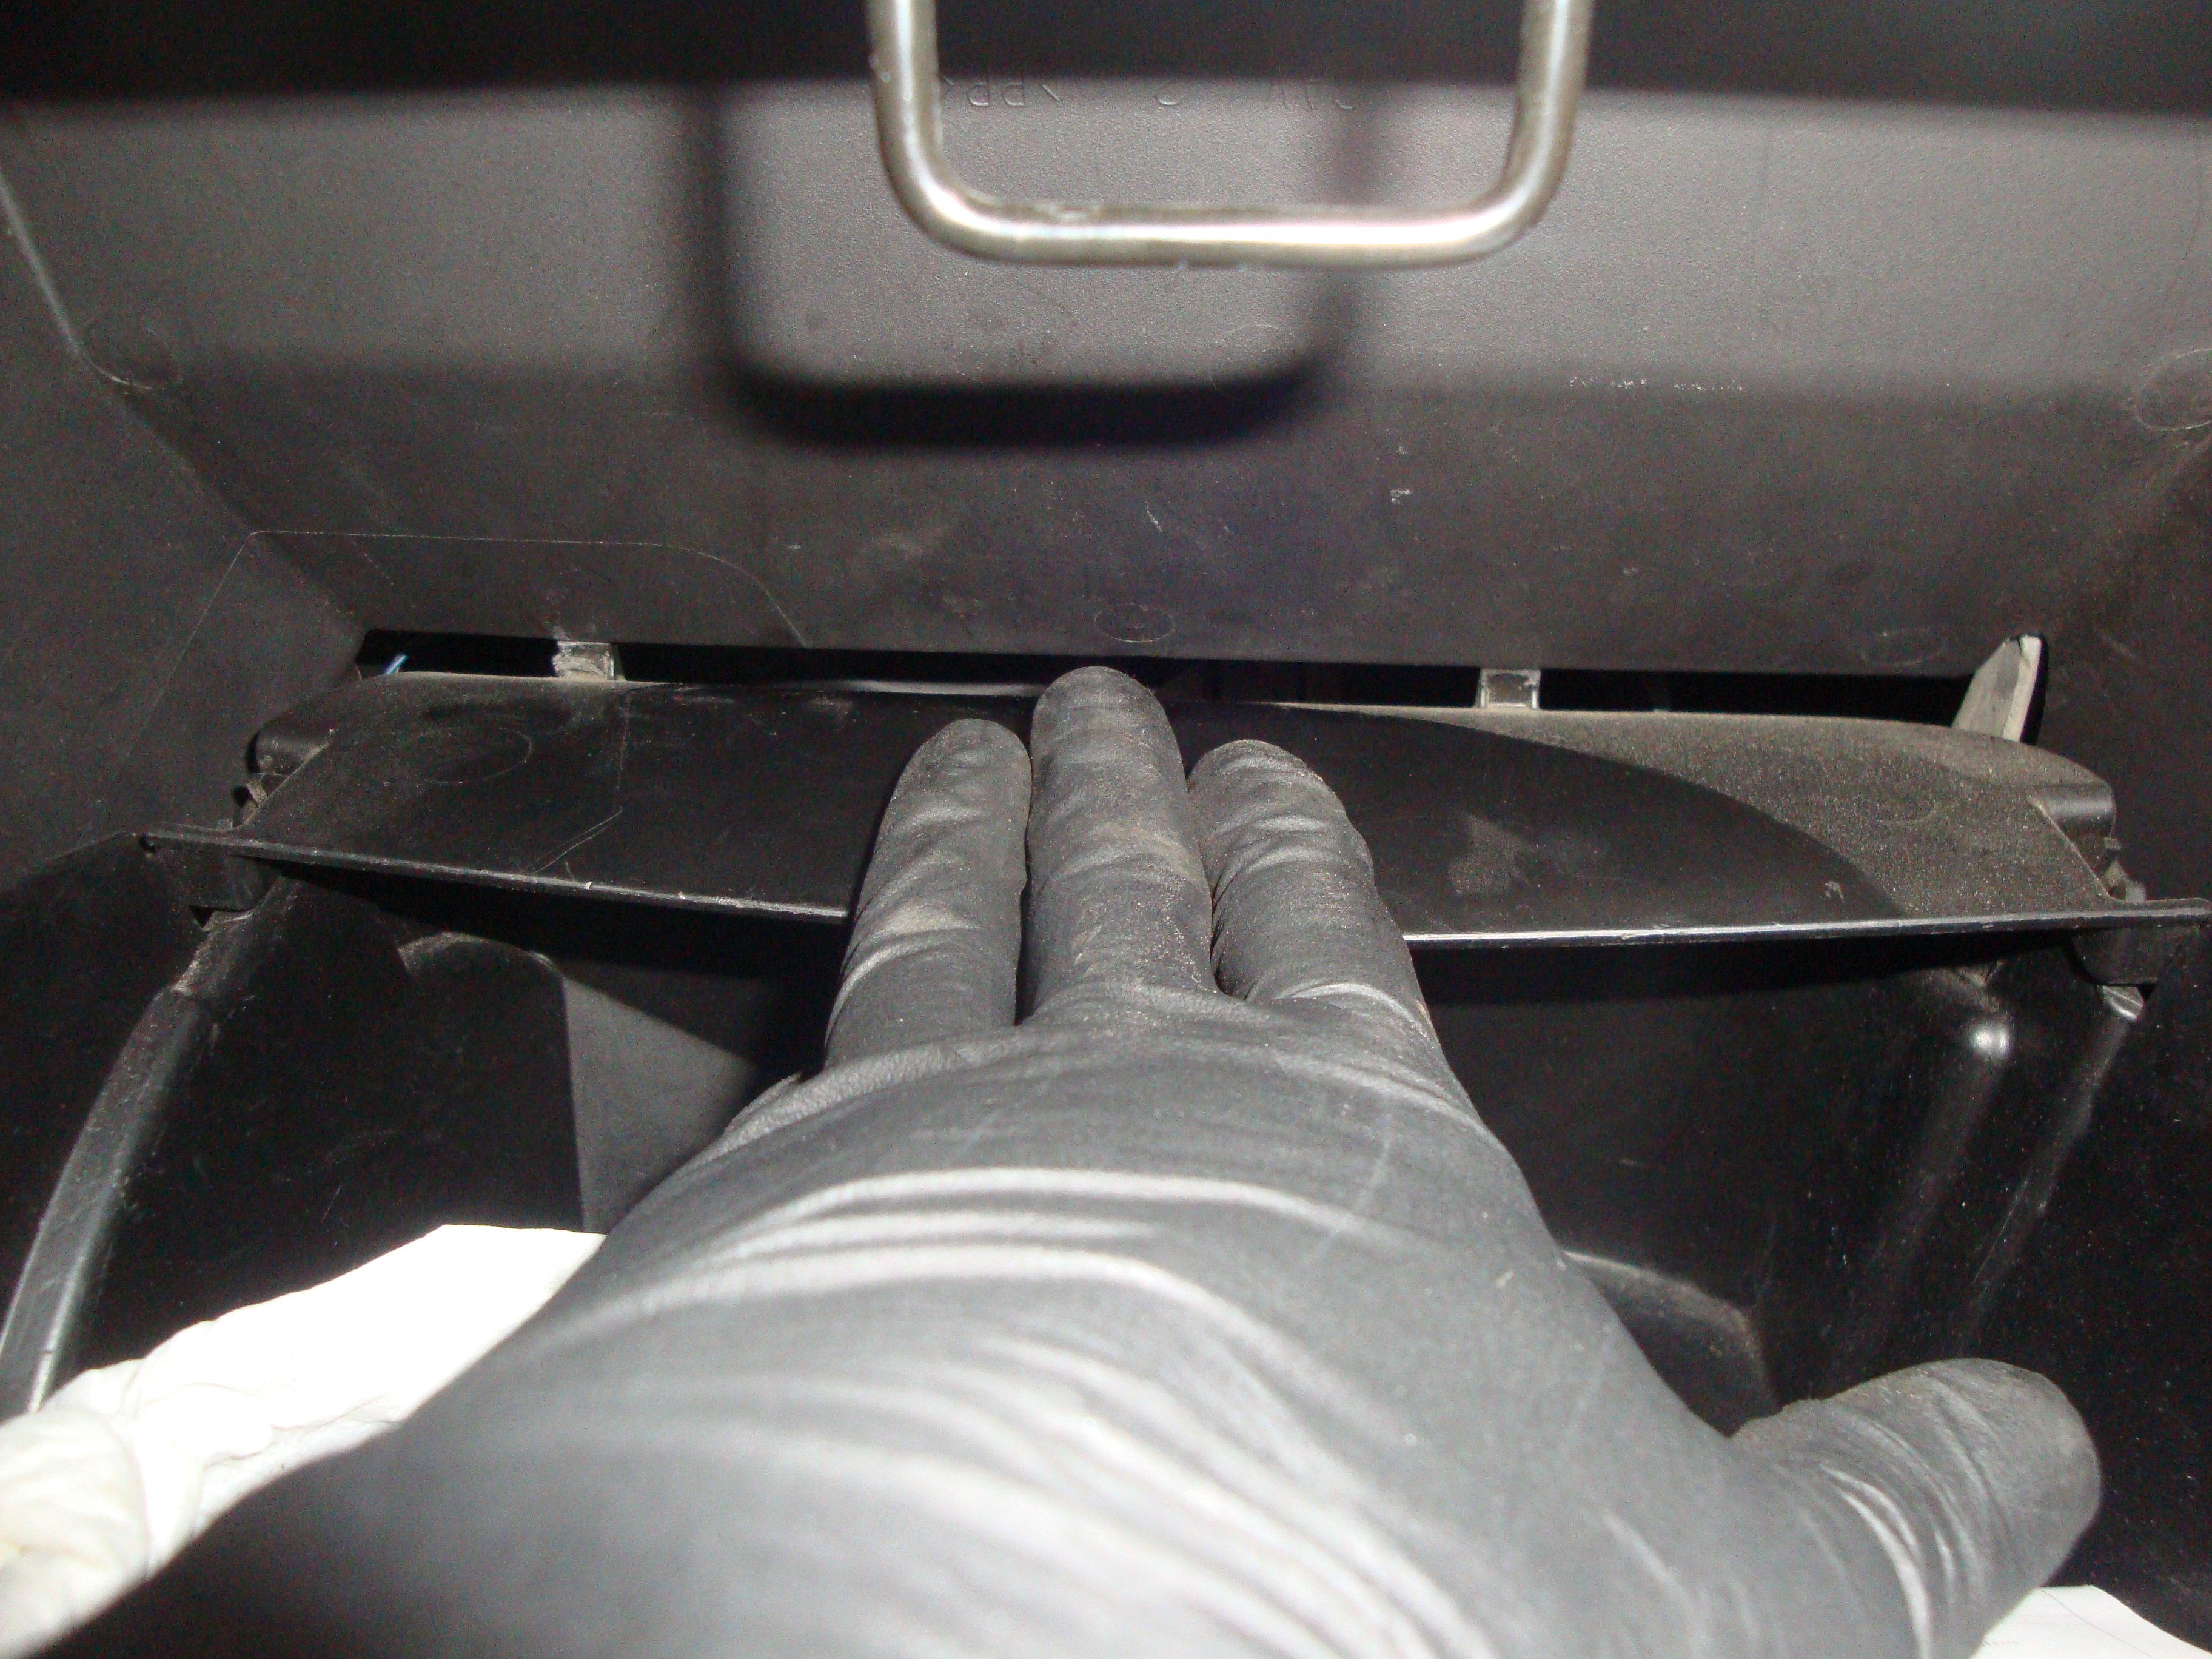 Service manual [How To Remove 2008 Chevrolet Impala Glove ...